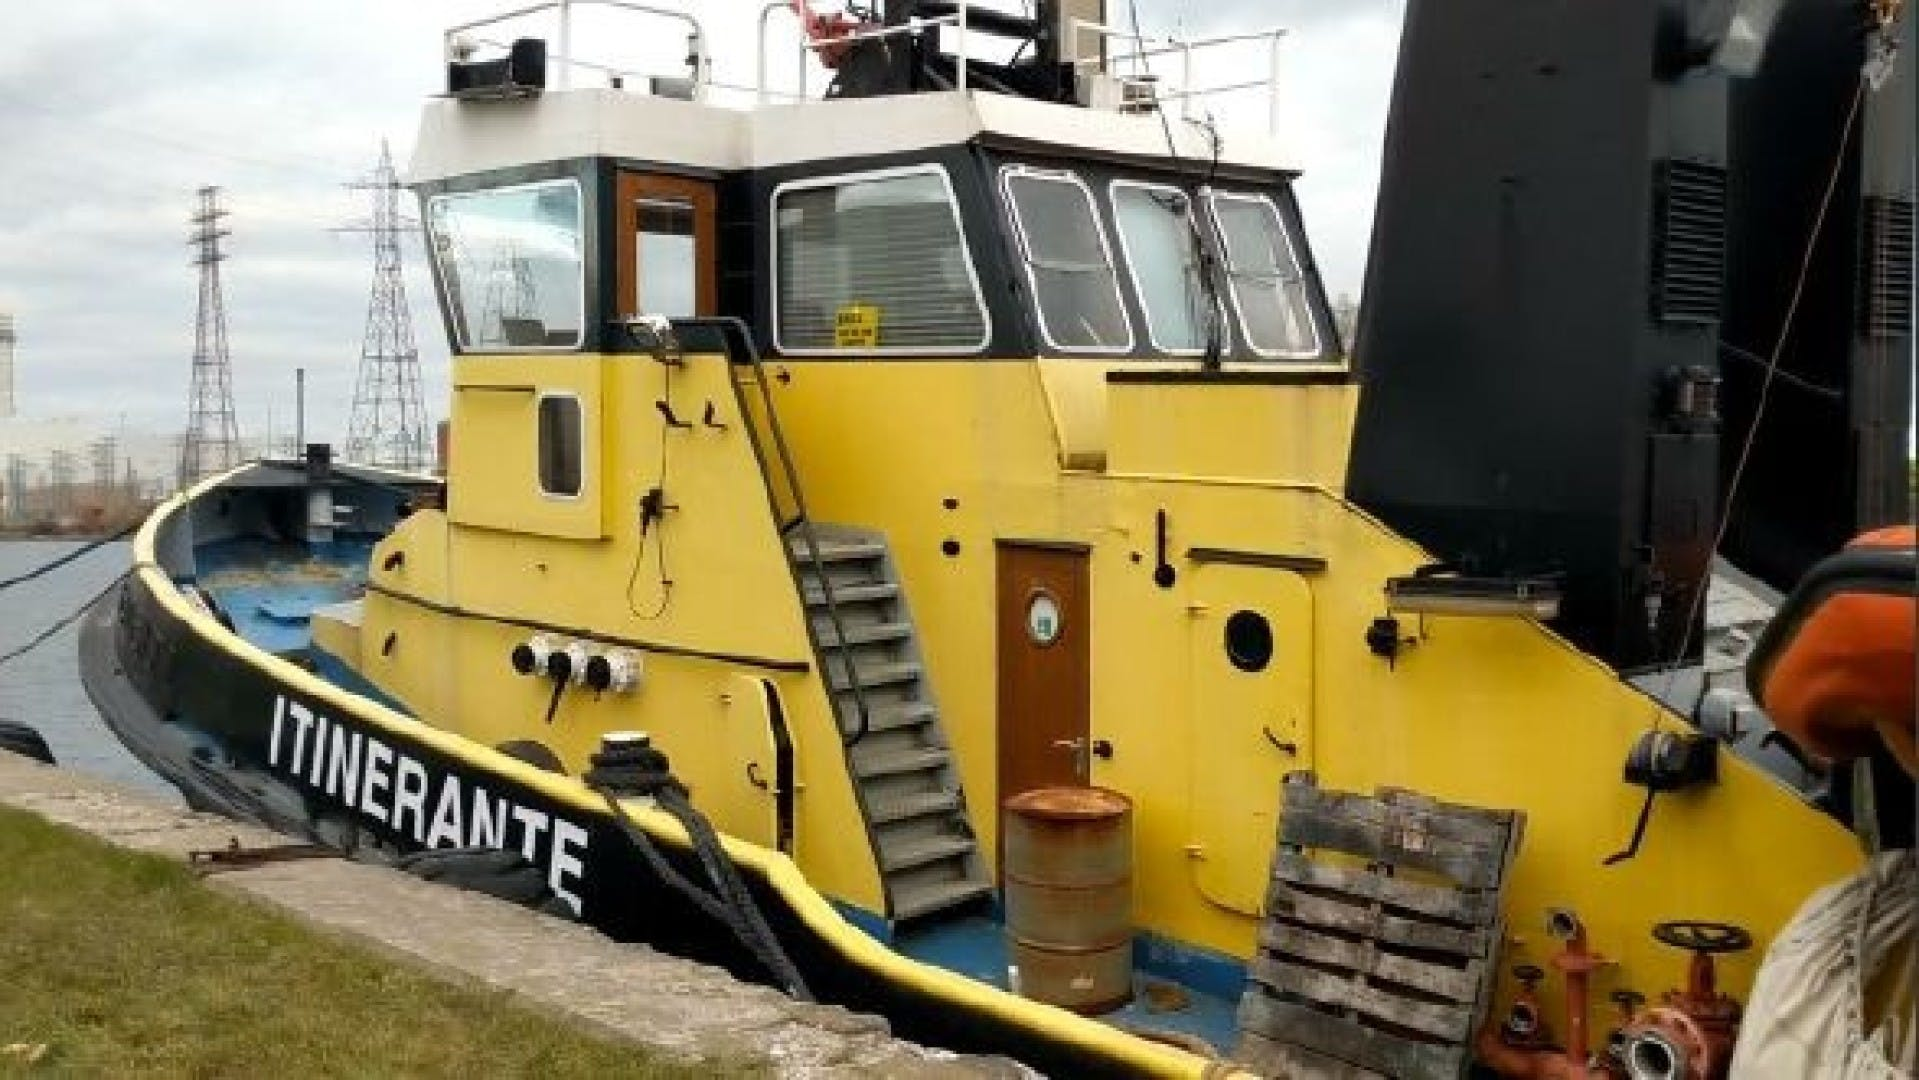 1963 Tugboat 83'   ITINERANTE I | Picture 2 of 6